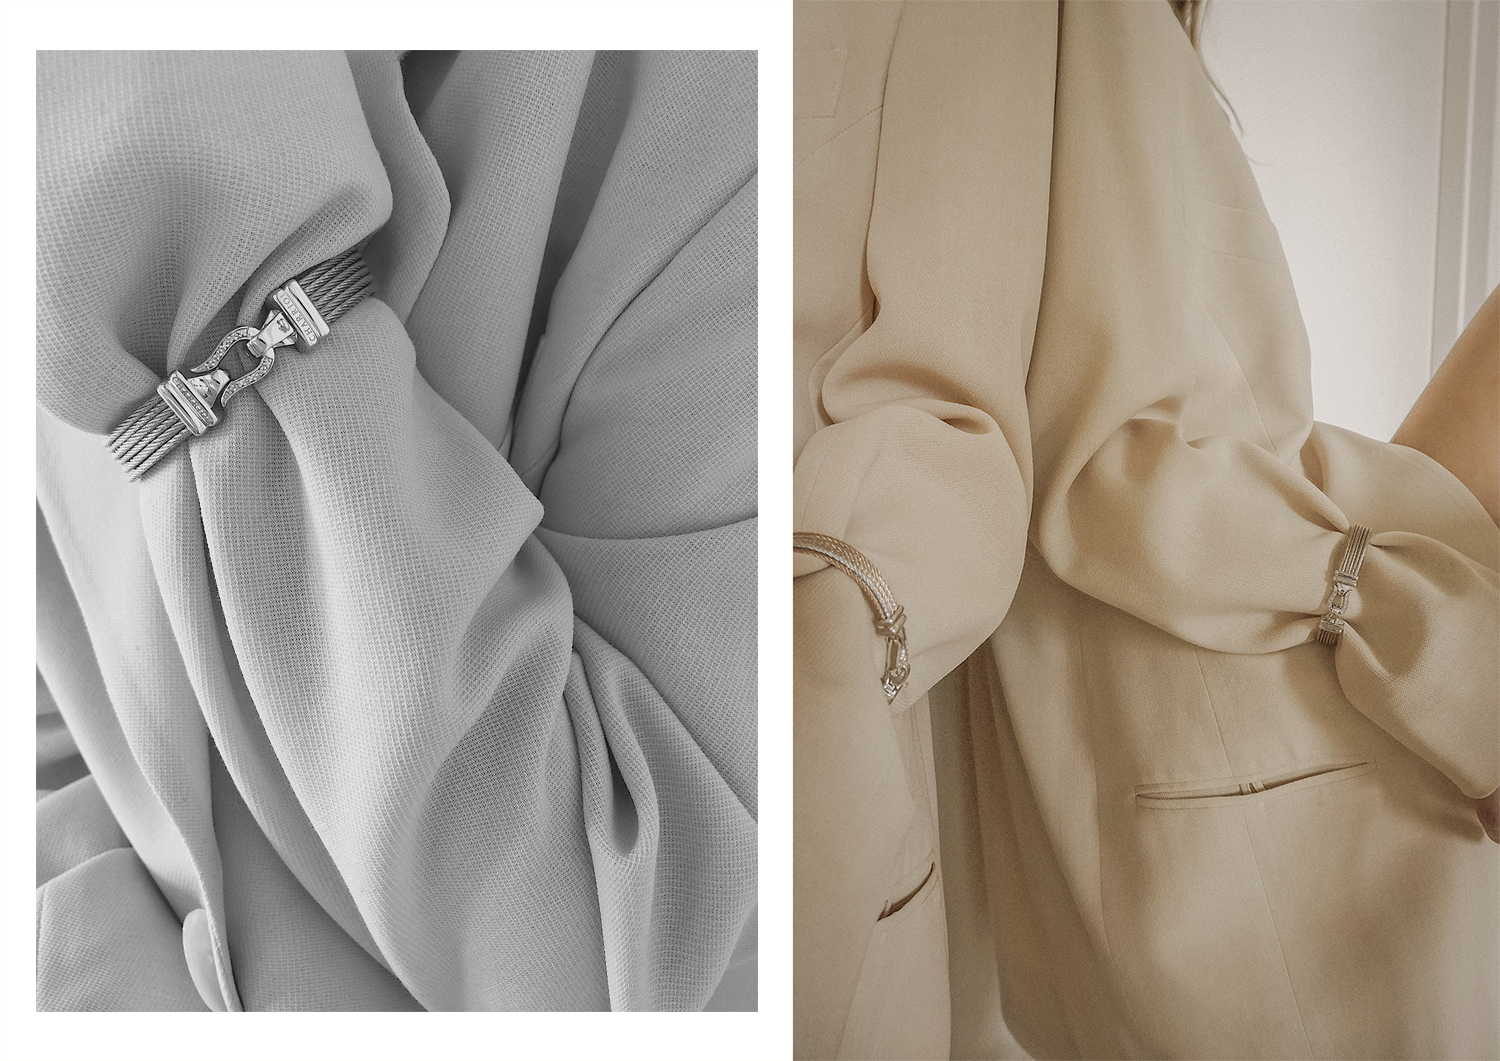 neutral_jacket_blazer_donna_karan_jewelry_charriol_bracelet_the_white_ocean_lena_juice_06